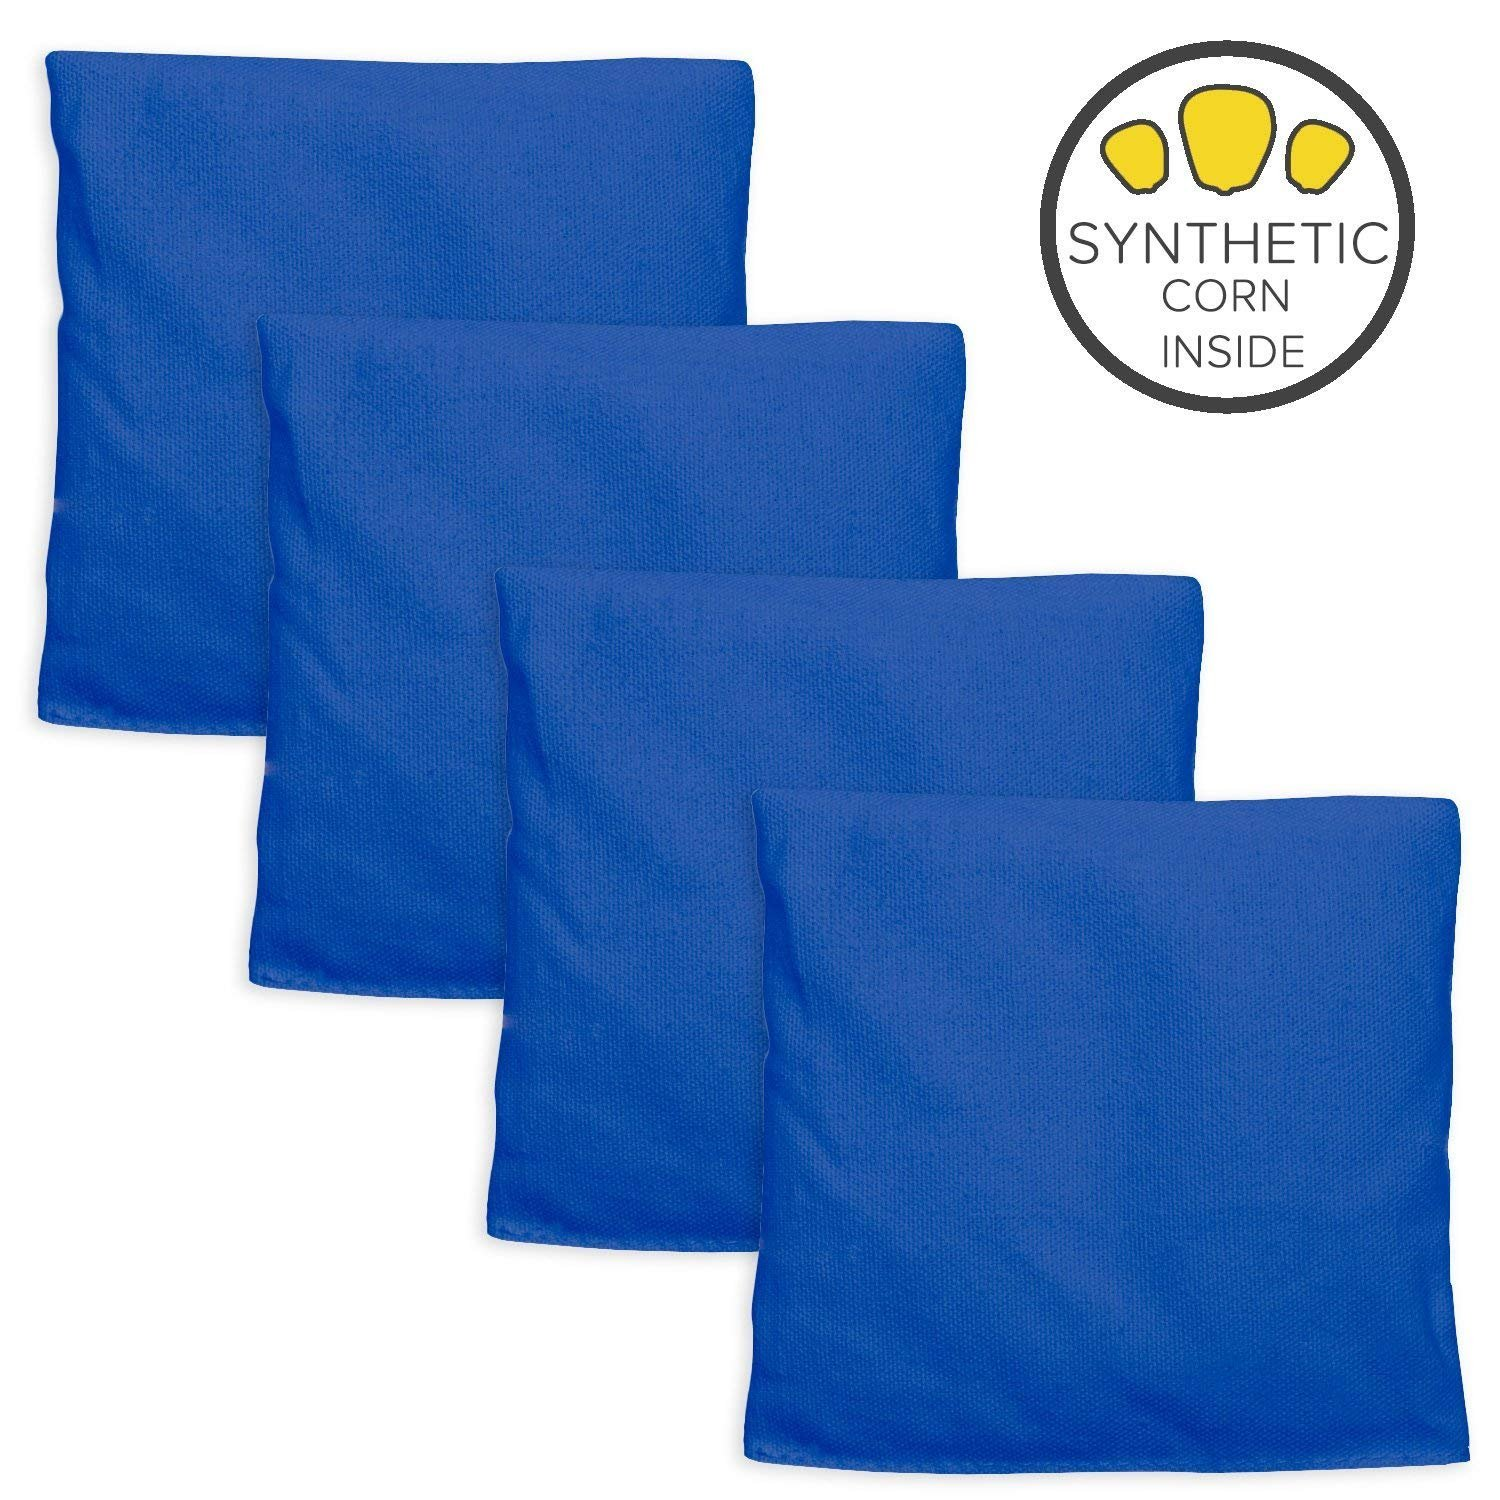 Play Platoon Weatherproof Duck Cloth Cornhole Bags - Set of 4 Blue Bean Bags Corn Hole Game - Made Corn-Shaped Synthetic Corn